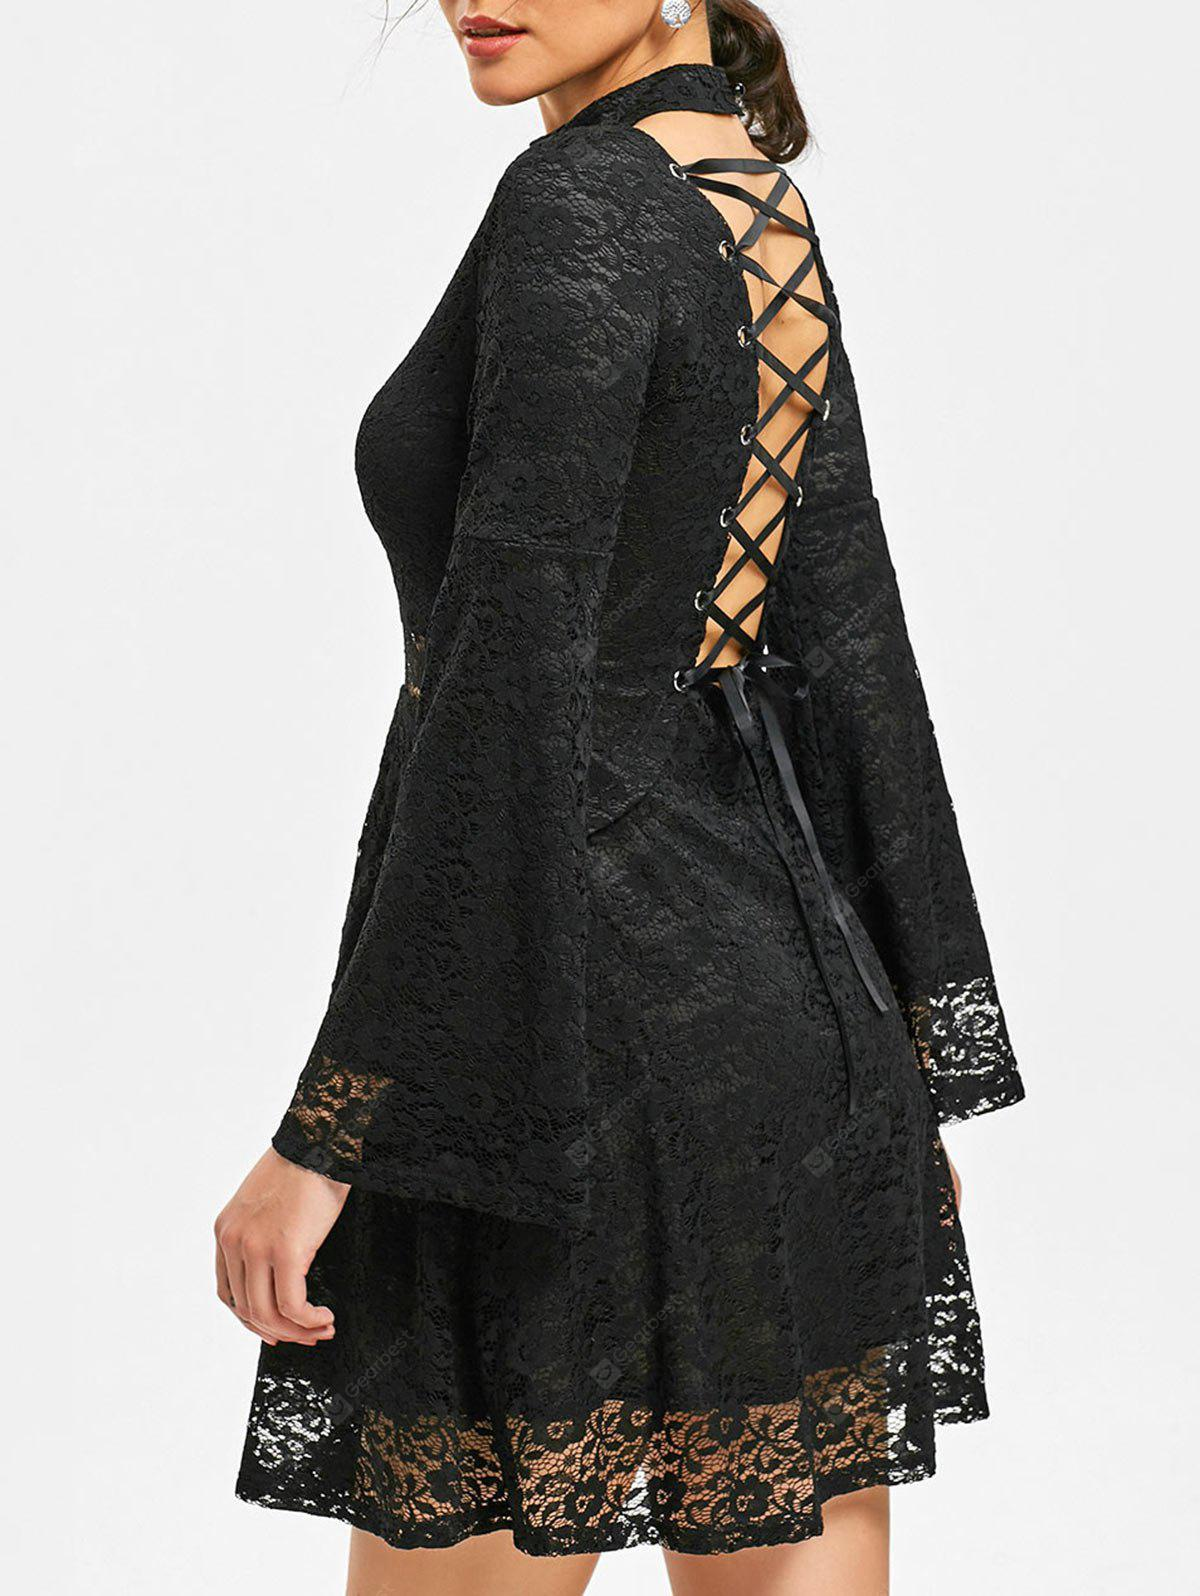 Mock Neck Back Tie-up Lace Dress